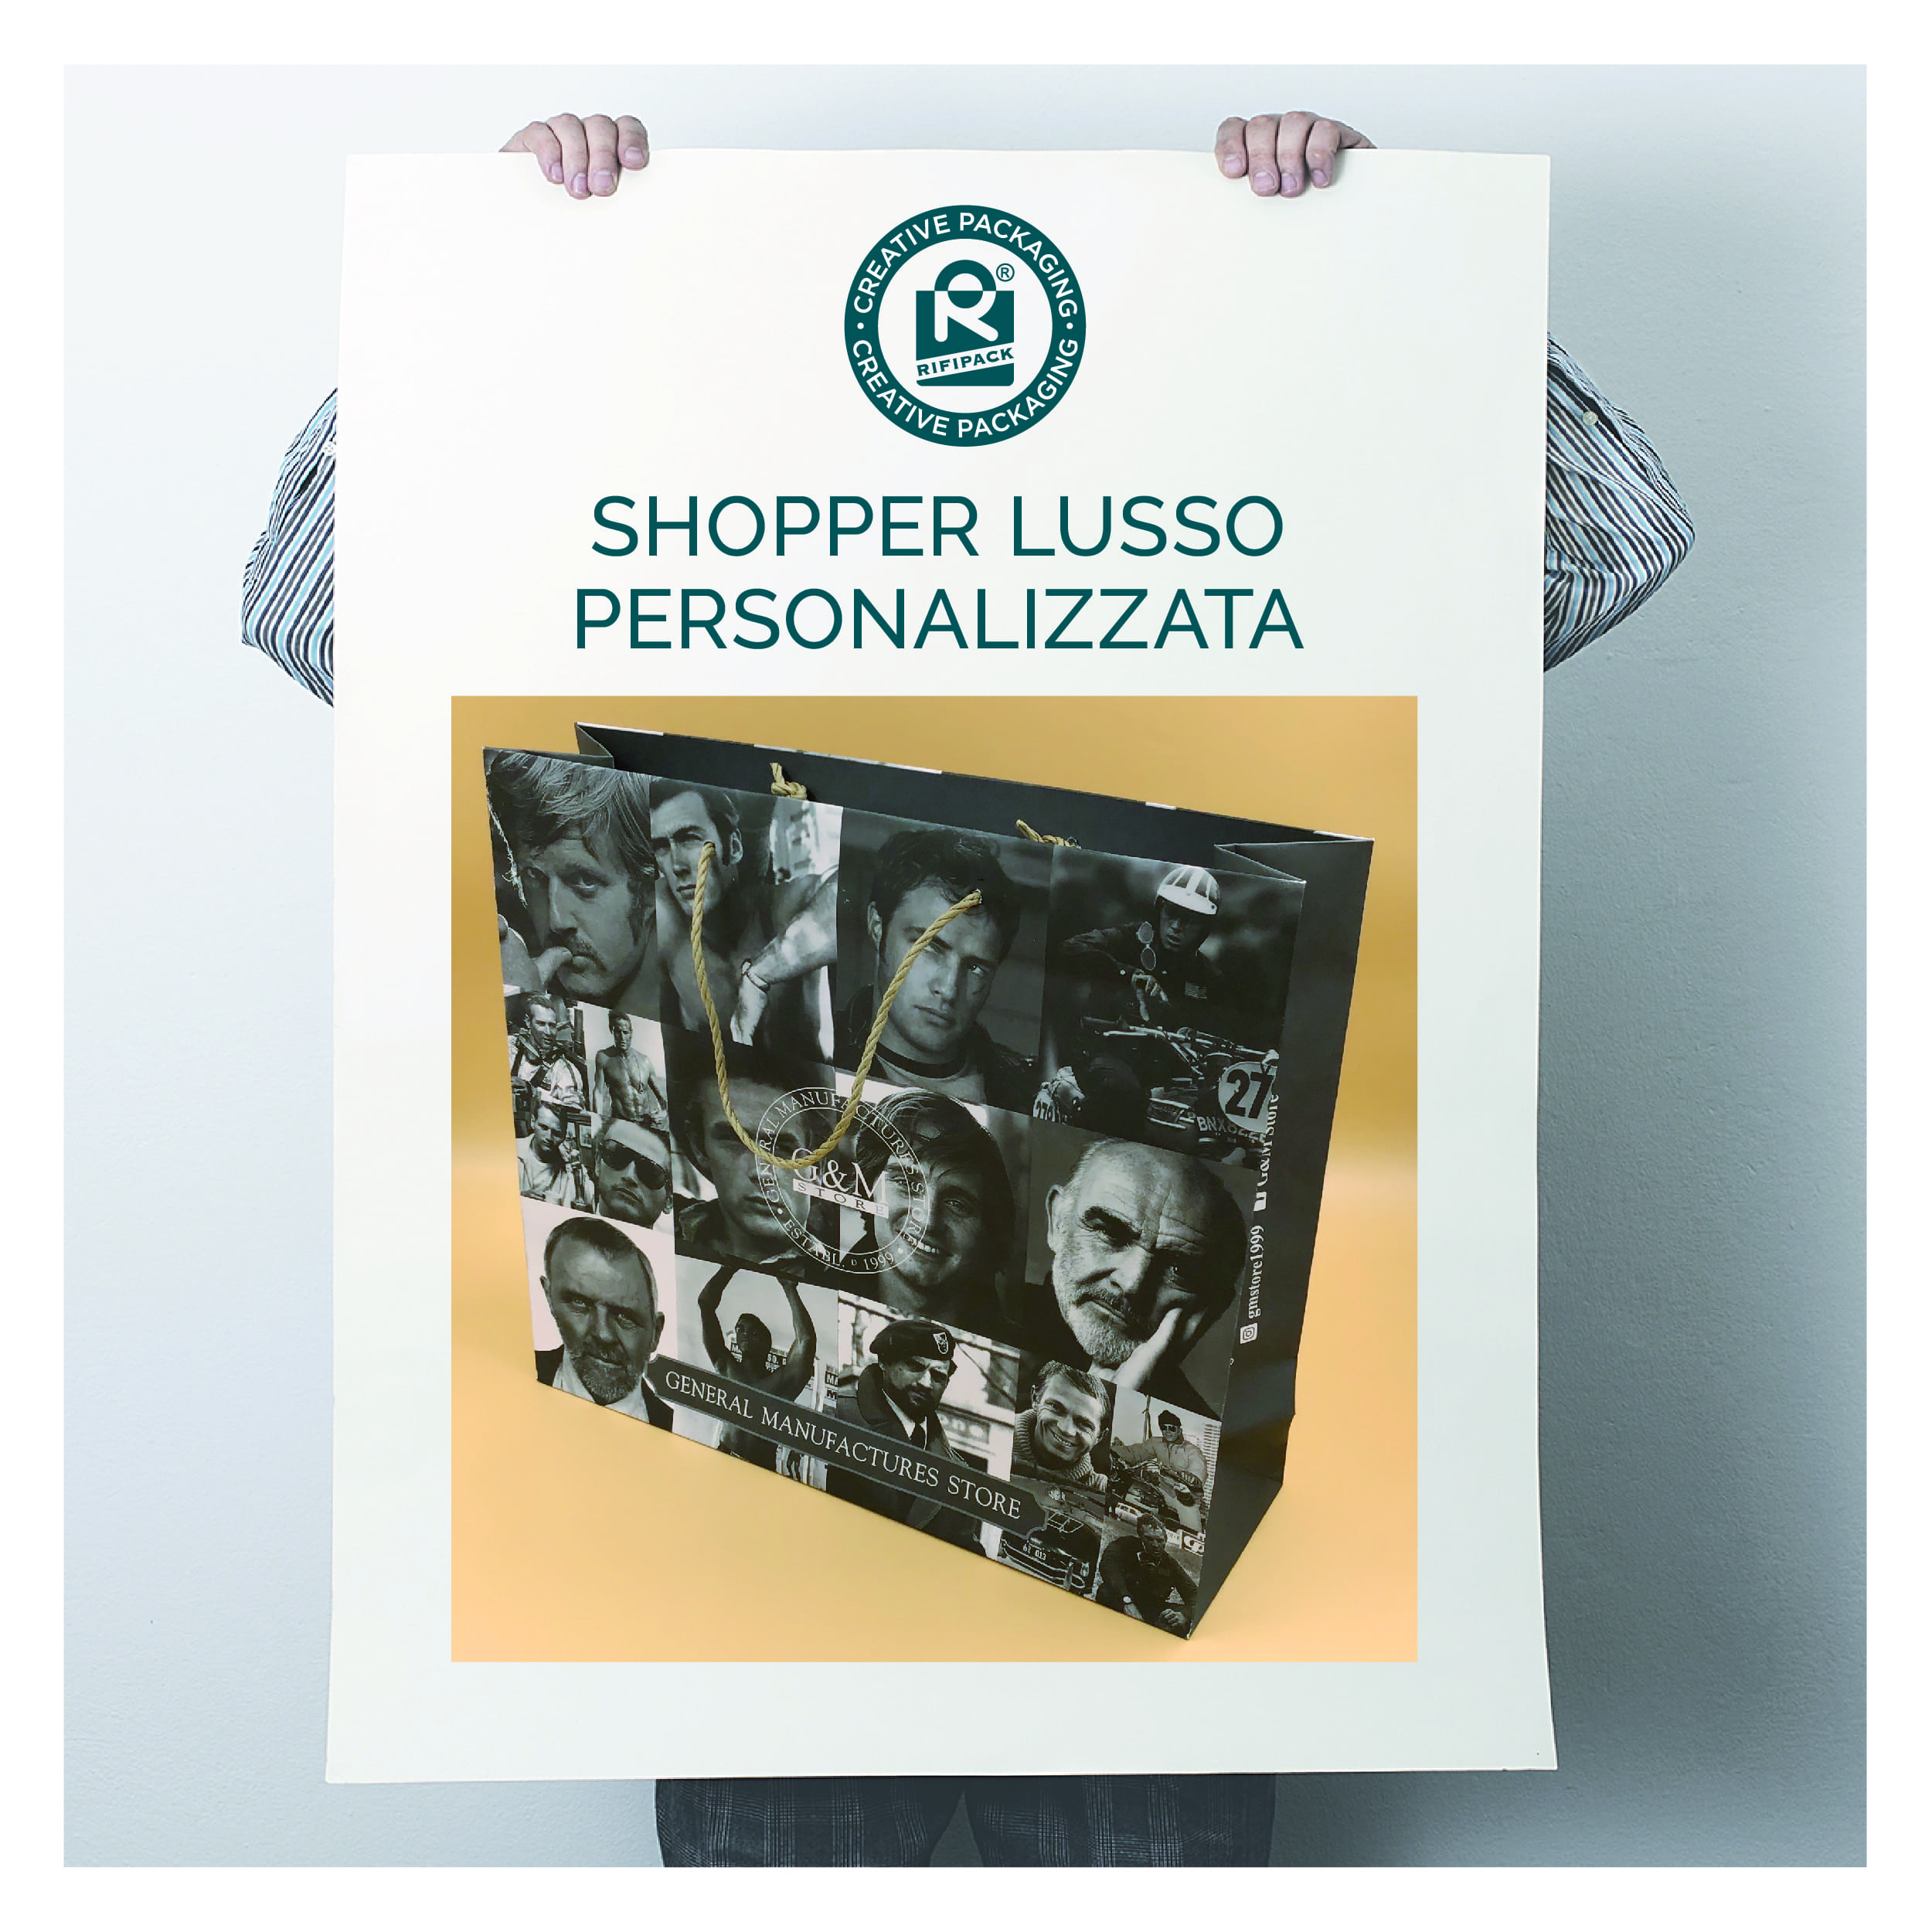 rifipack shopper lusso personalizzata made in italy creative packaging